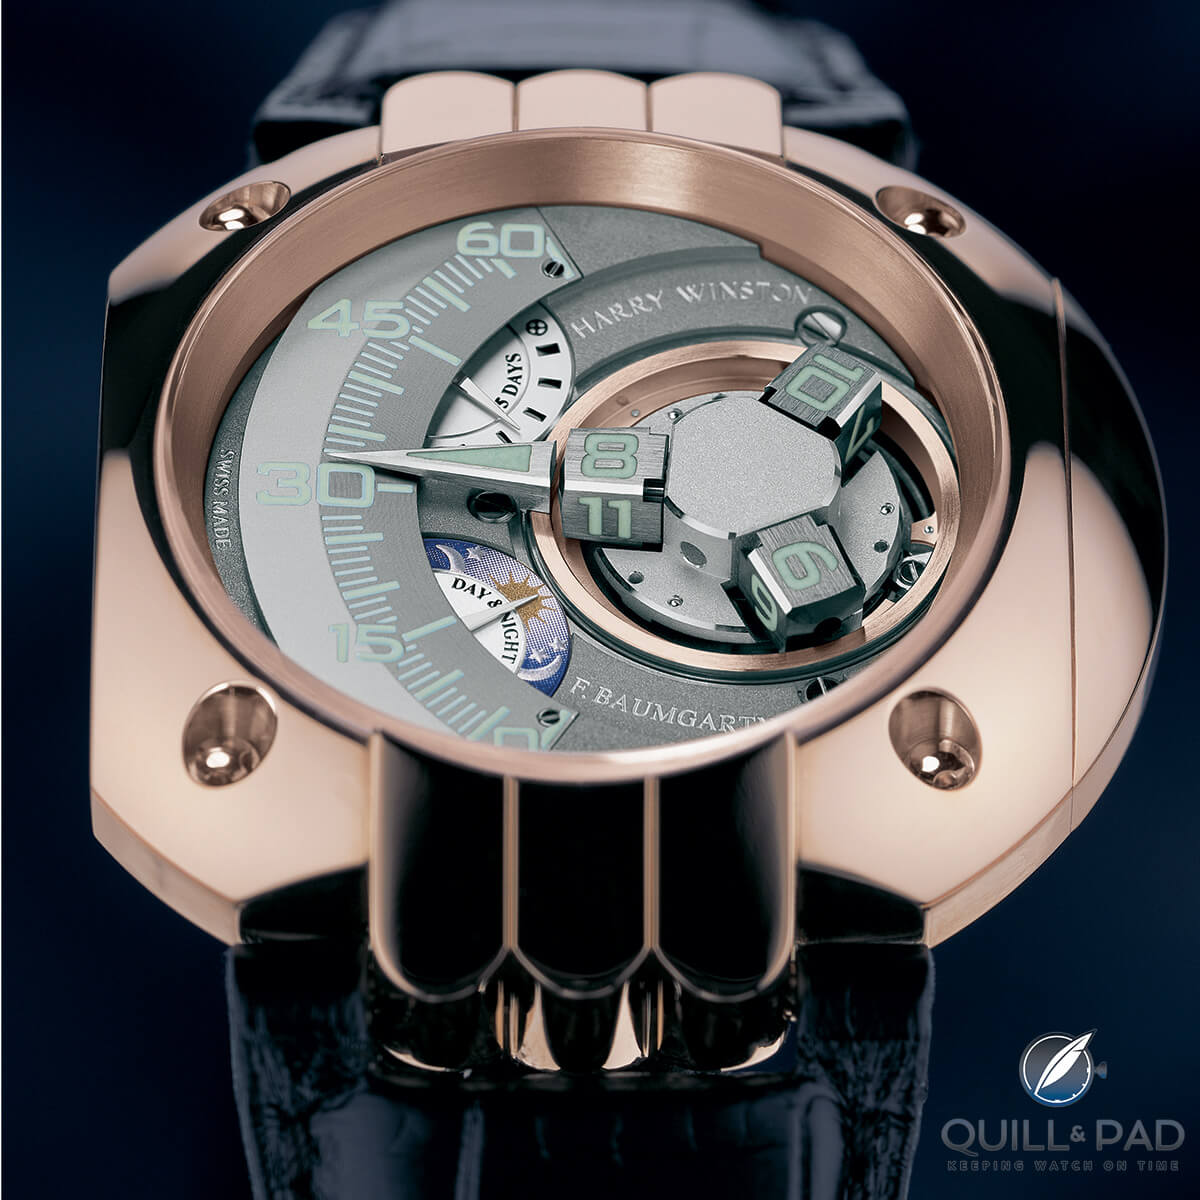 2005: Harry Winston Opus V by Urwerk